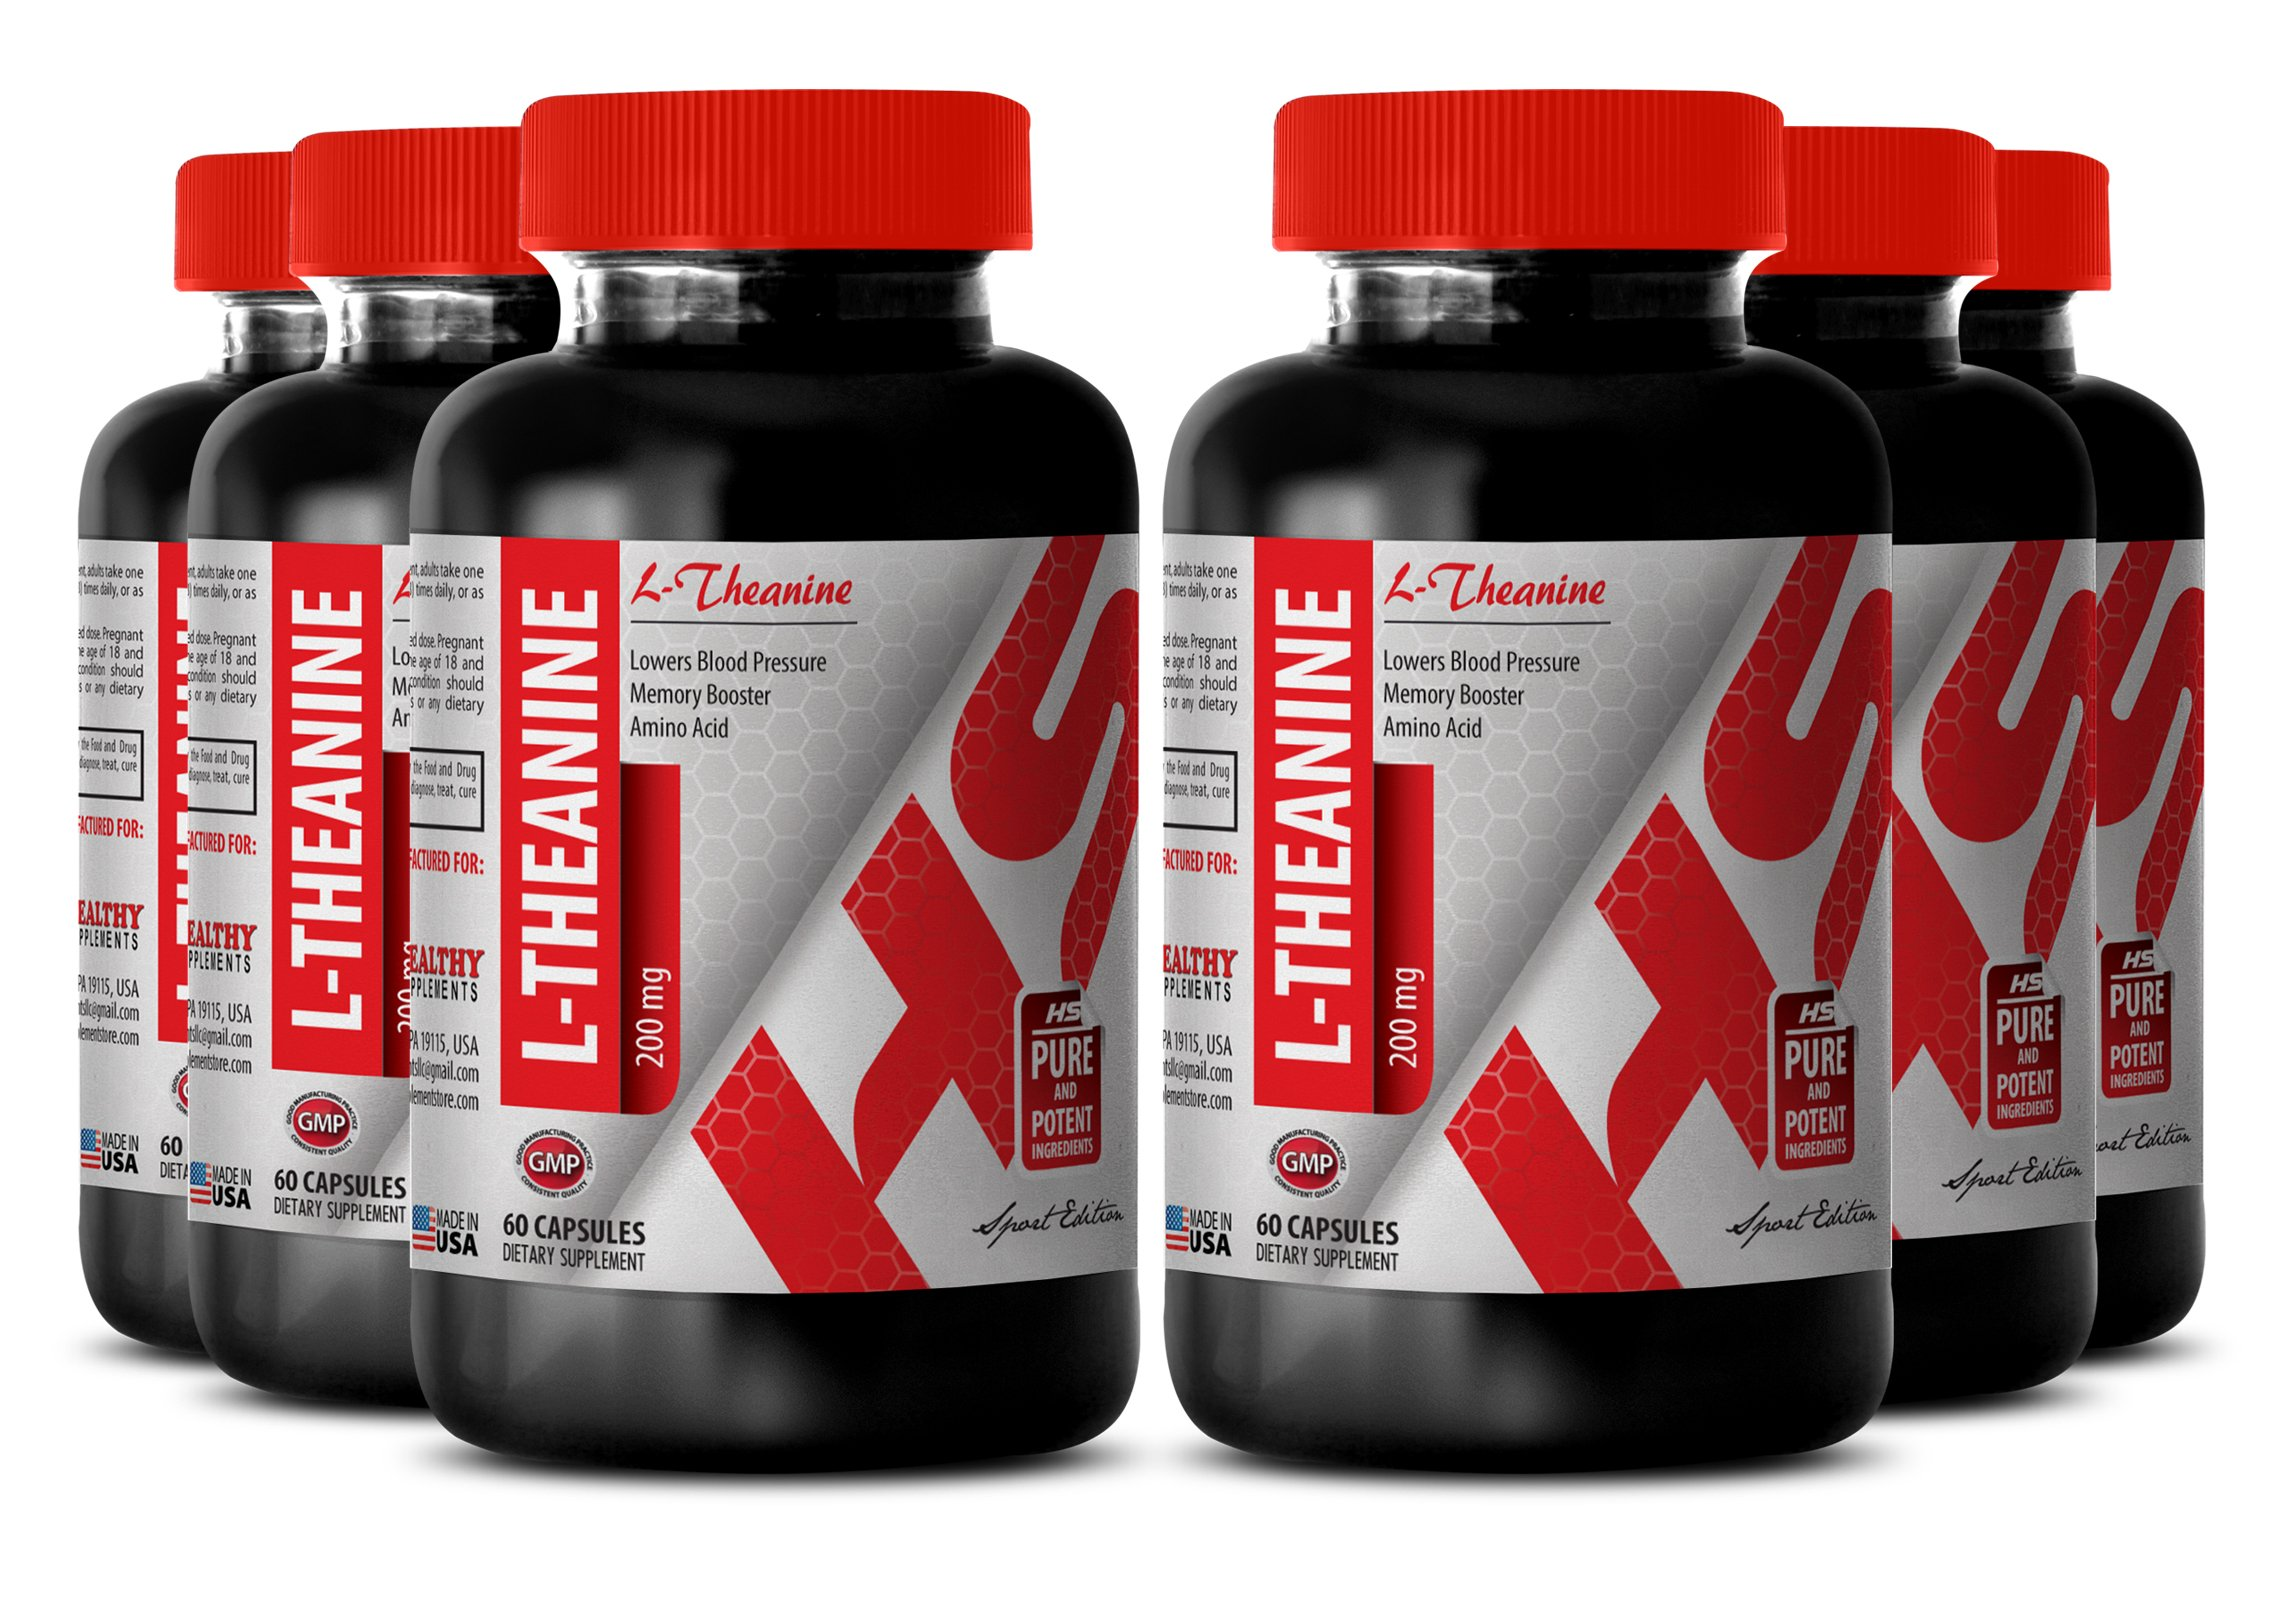 Theanine herbs - NATURAL L-THEANINE 200MG - increase activity (6 Bottles)